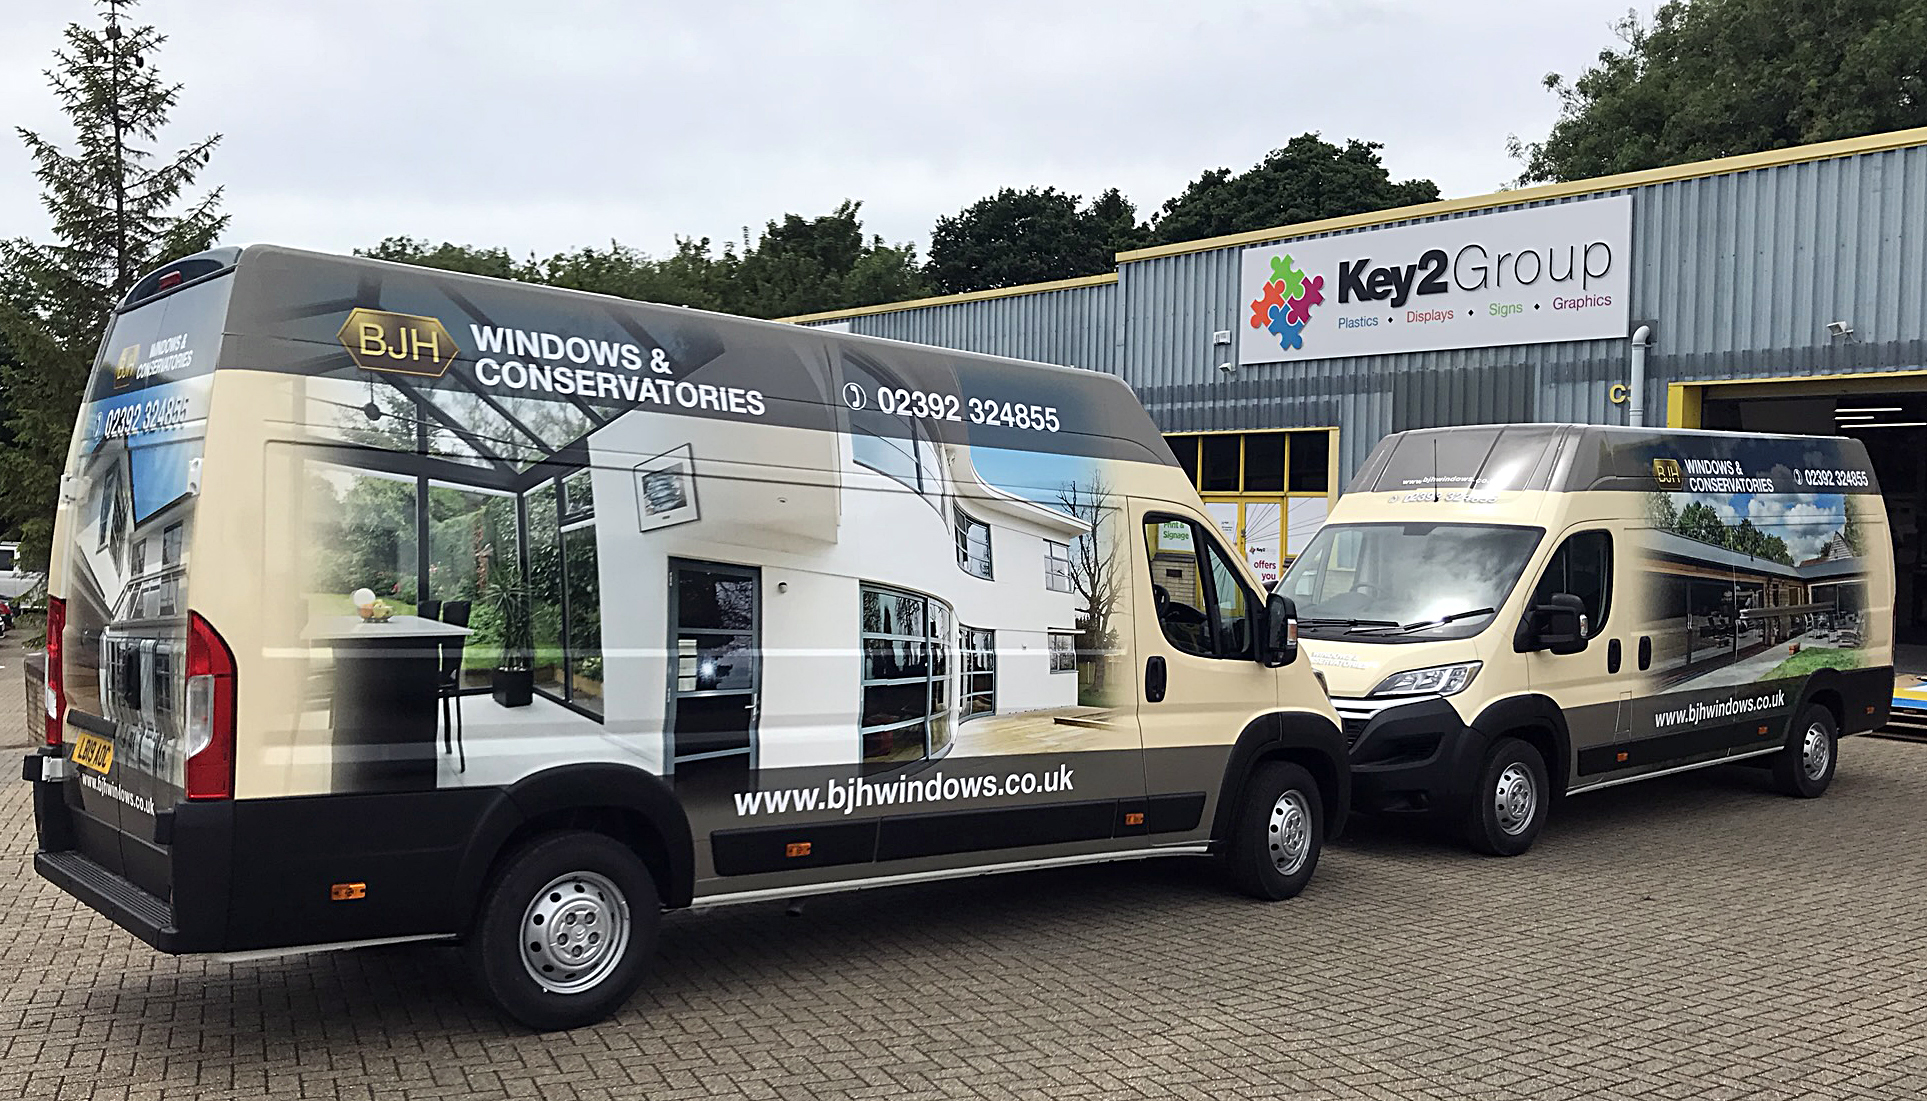 BJH Windows and Conservatories van wraps